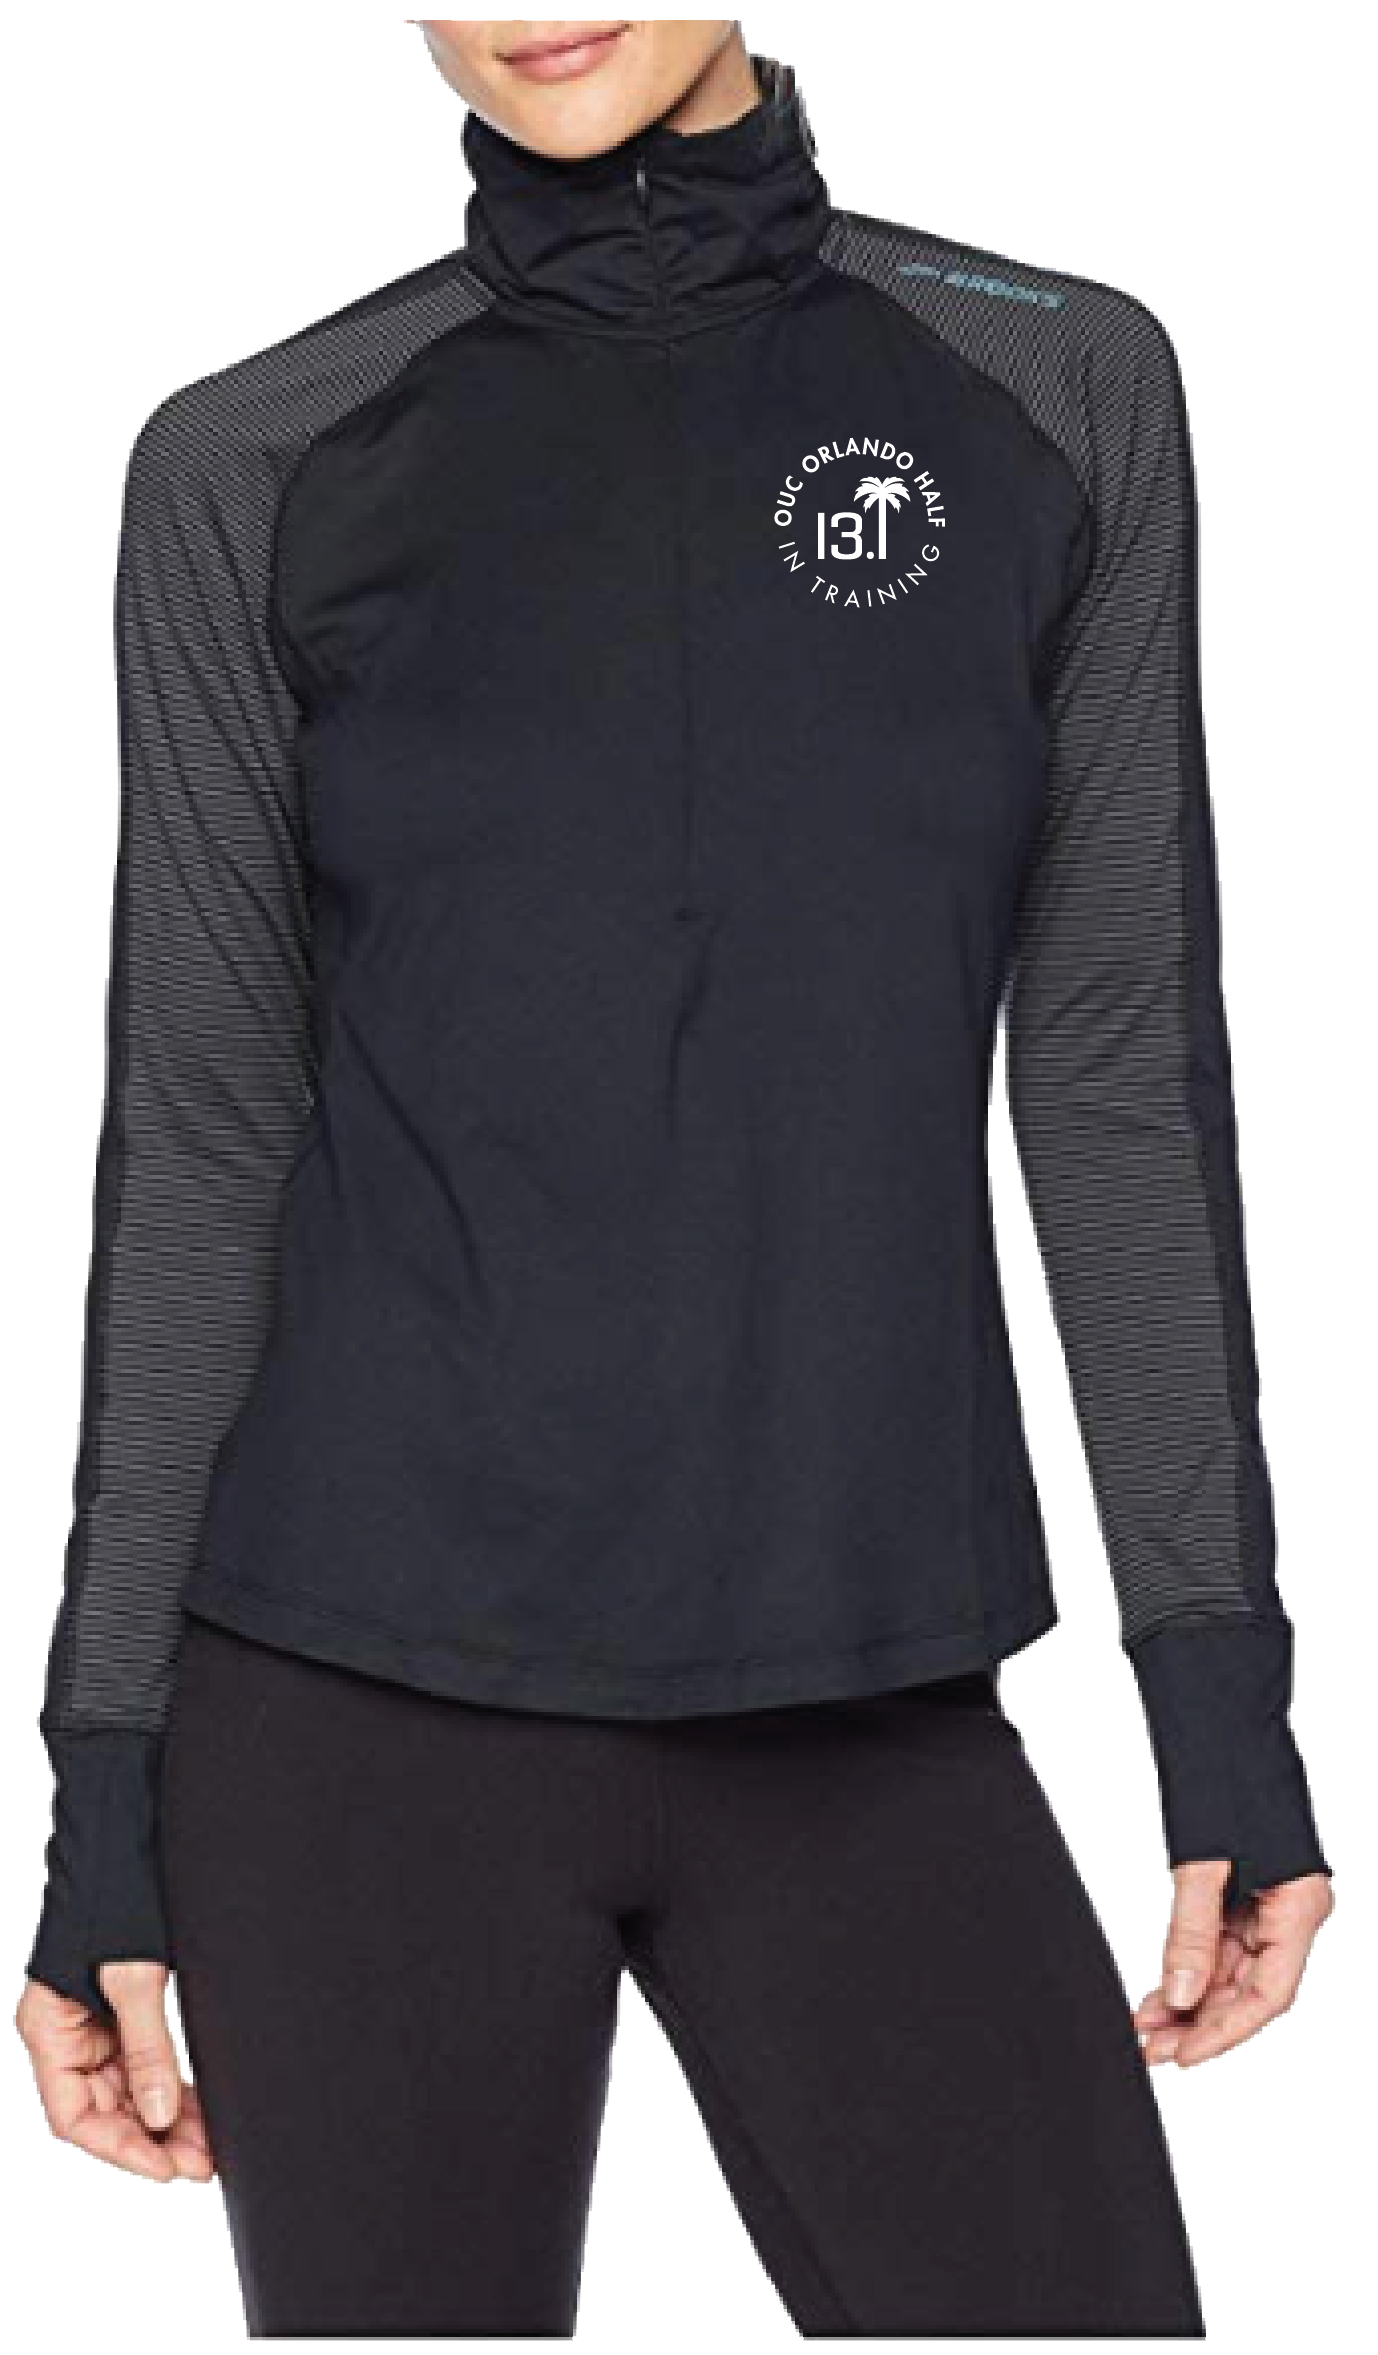 Brooks Women's Zip Up - Black